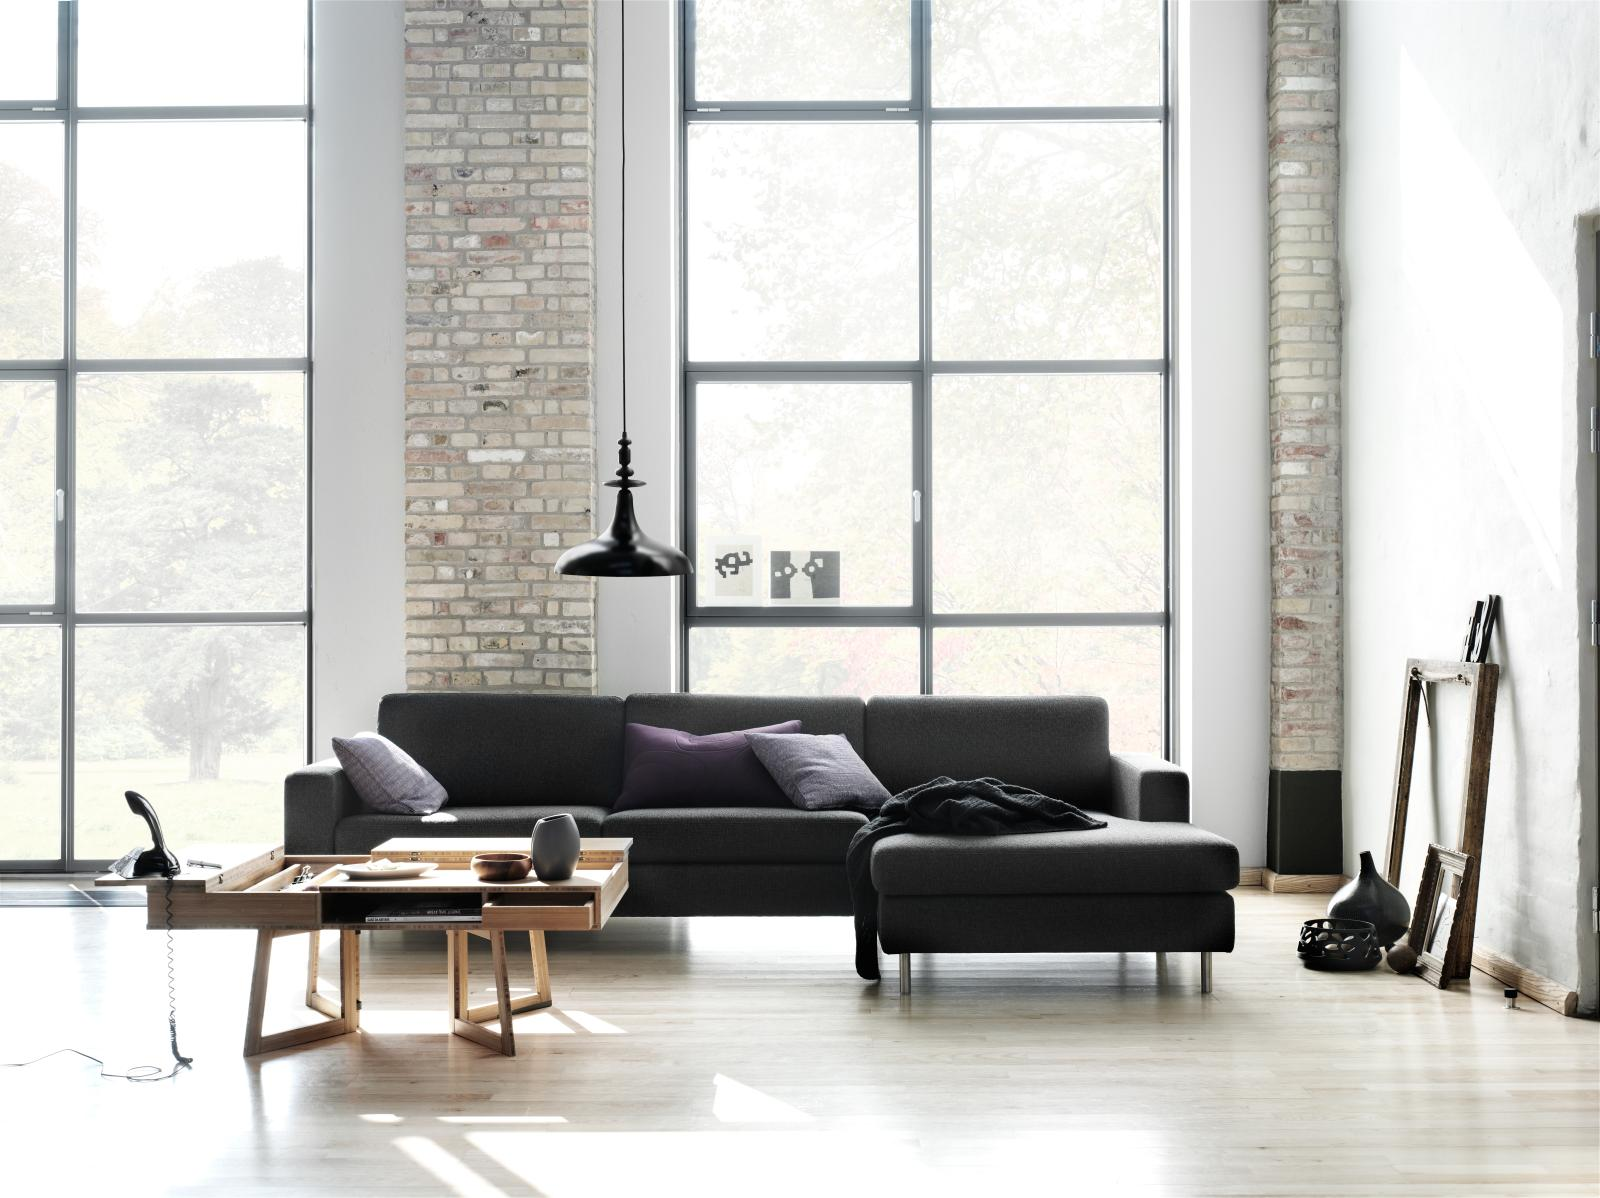 Bolia coco lapine designcoco lapine design for Scandinavian design shop